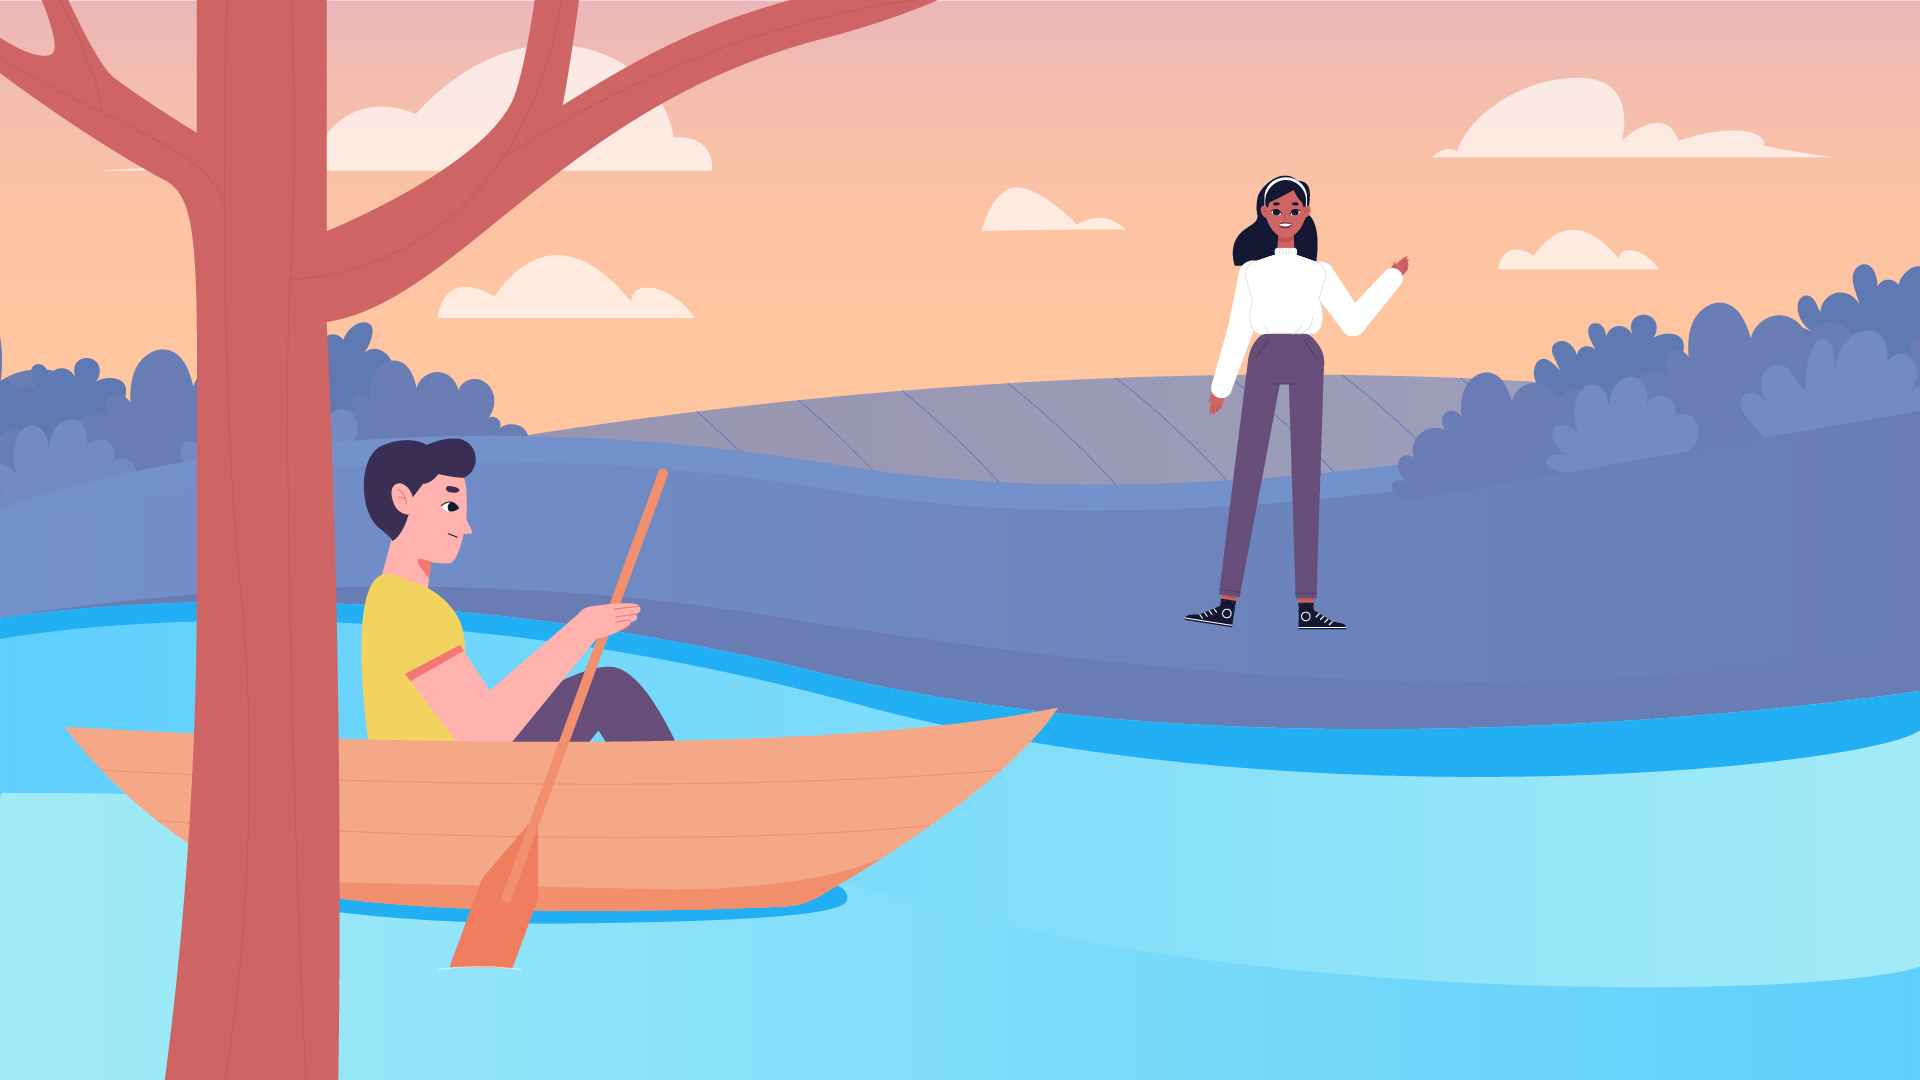 Sailing on a boat. Character Animation